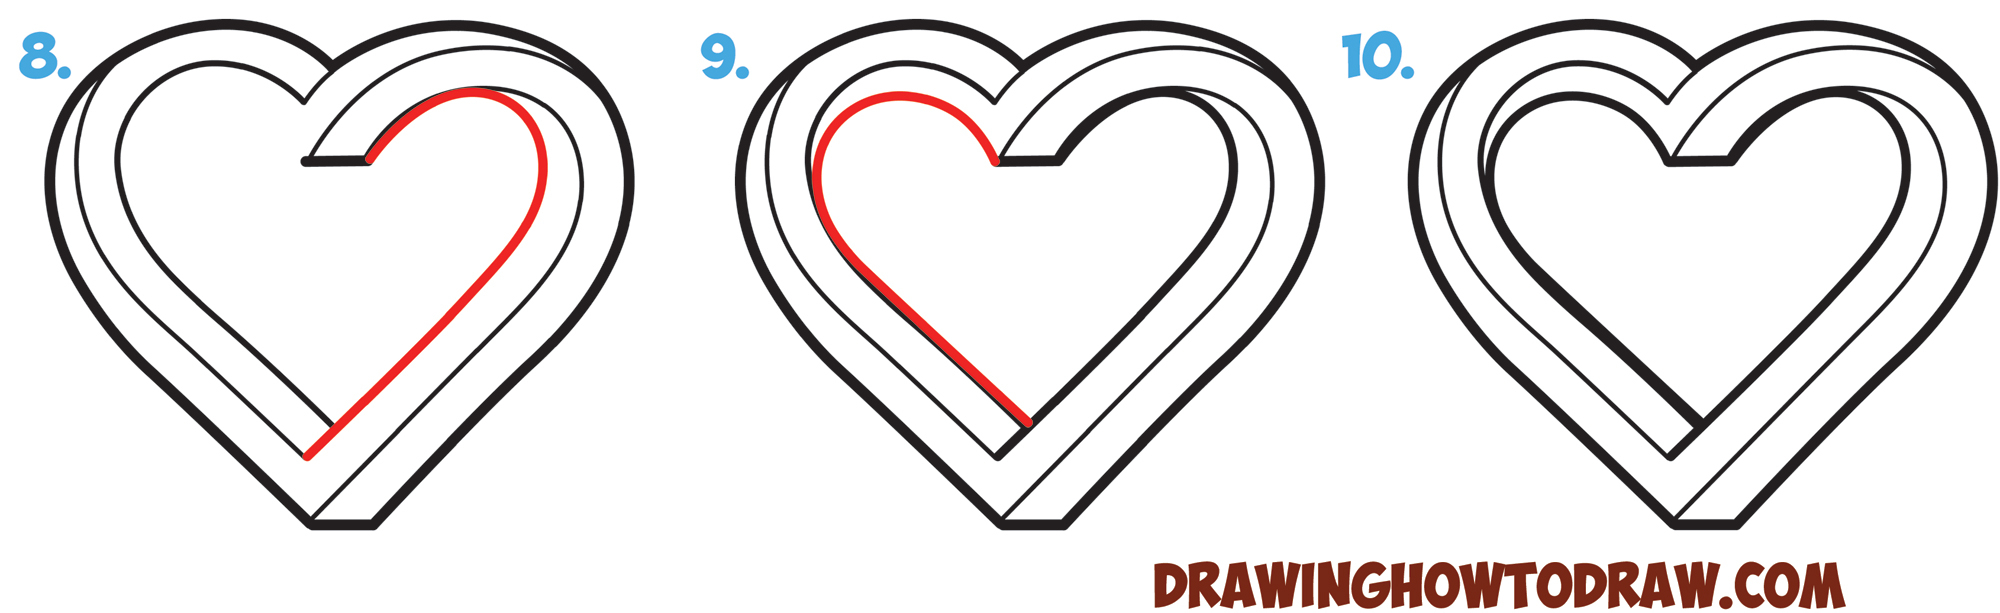 2000x613 Pics Of Hearts Drawing How To Draw An Impossible Heart